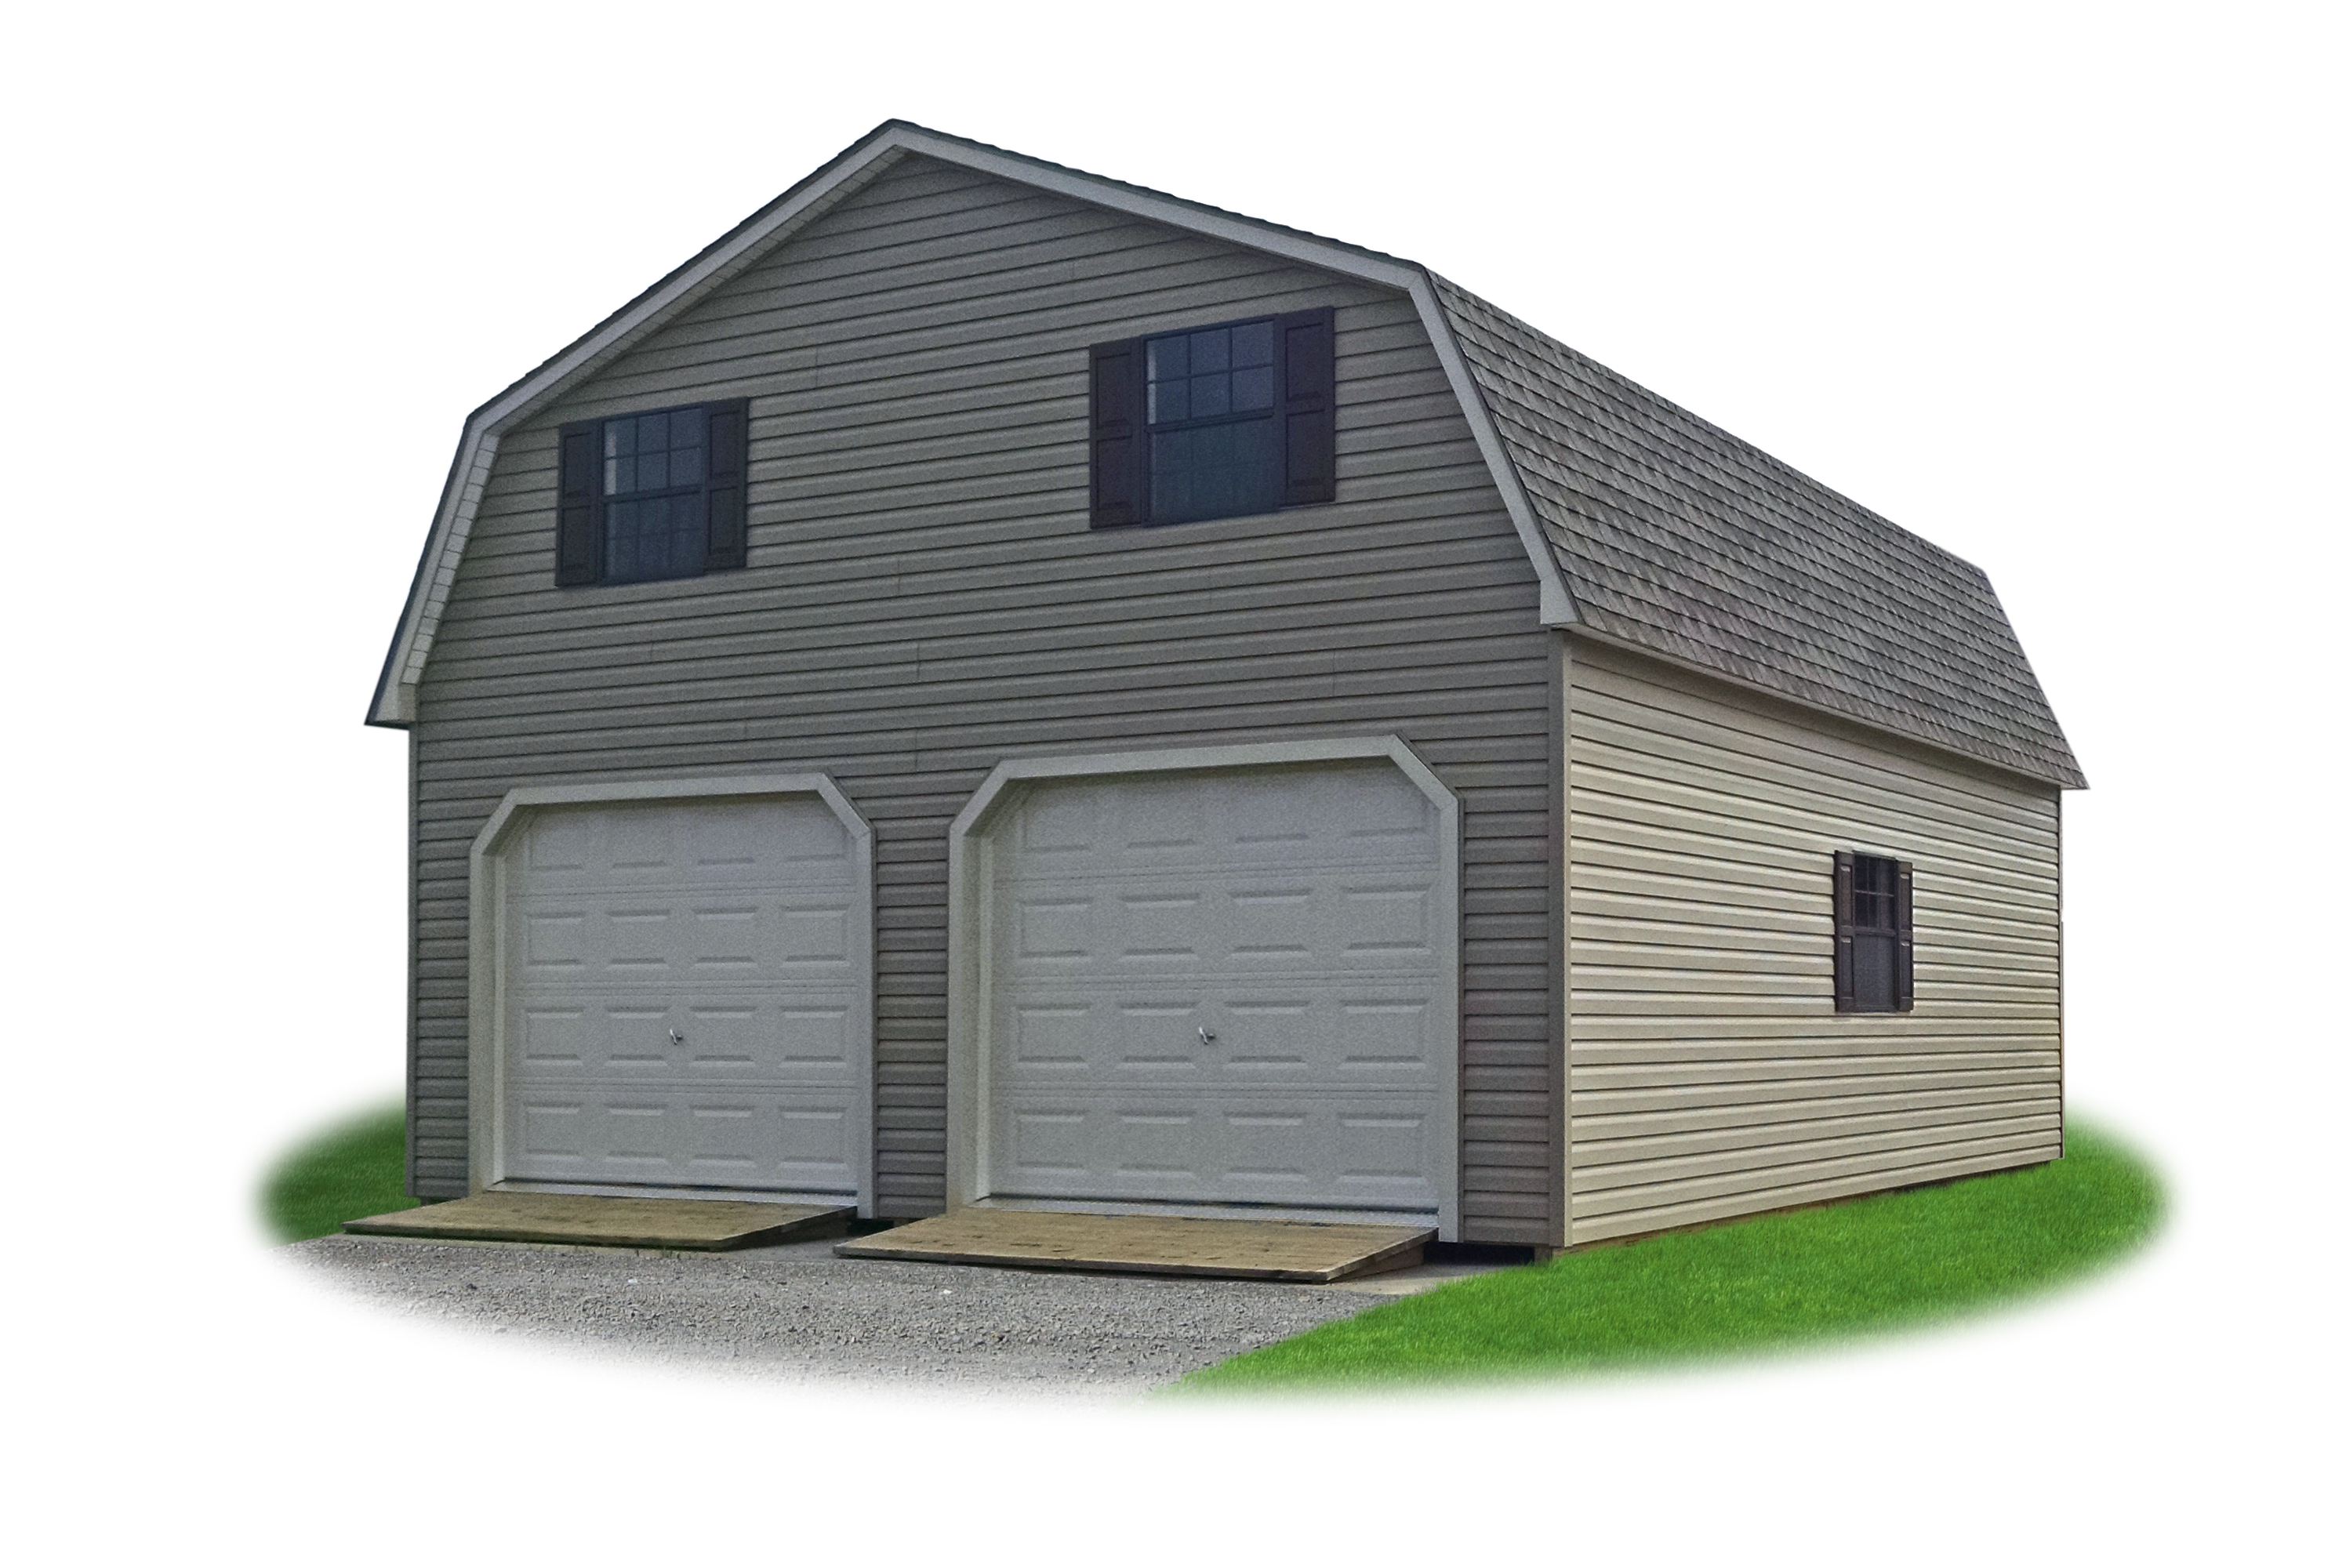 2 car modular garages pine creek structures legacy two story two car garages